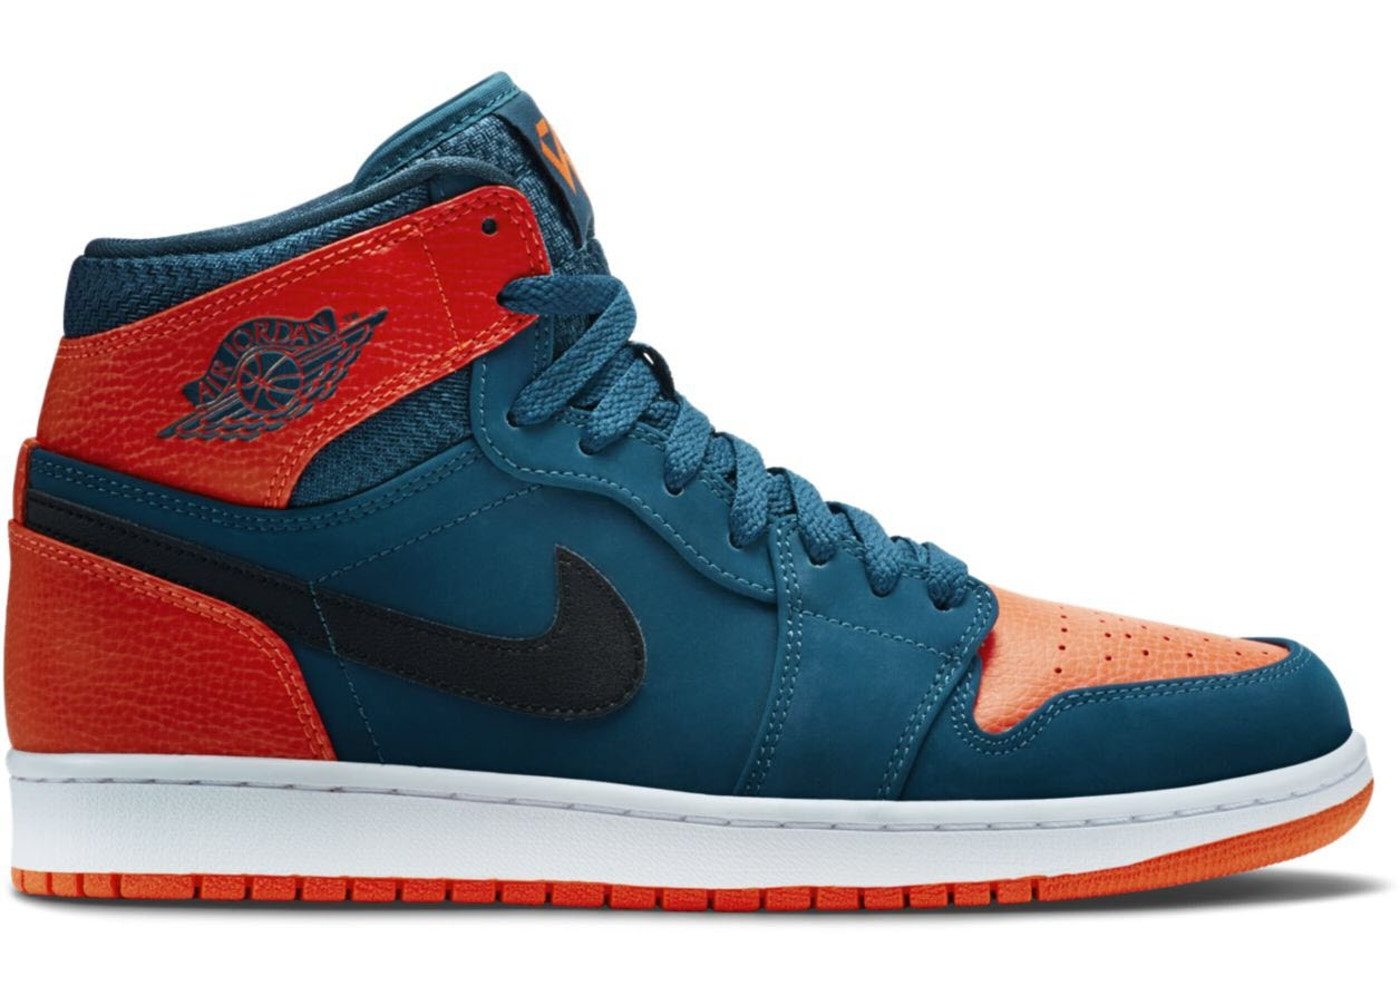 on sale 7092d 09d3c Air Jordan Shoes - New Lowest Asks